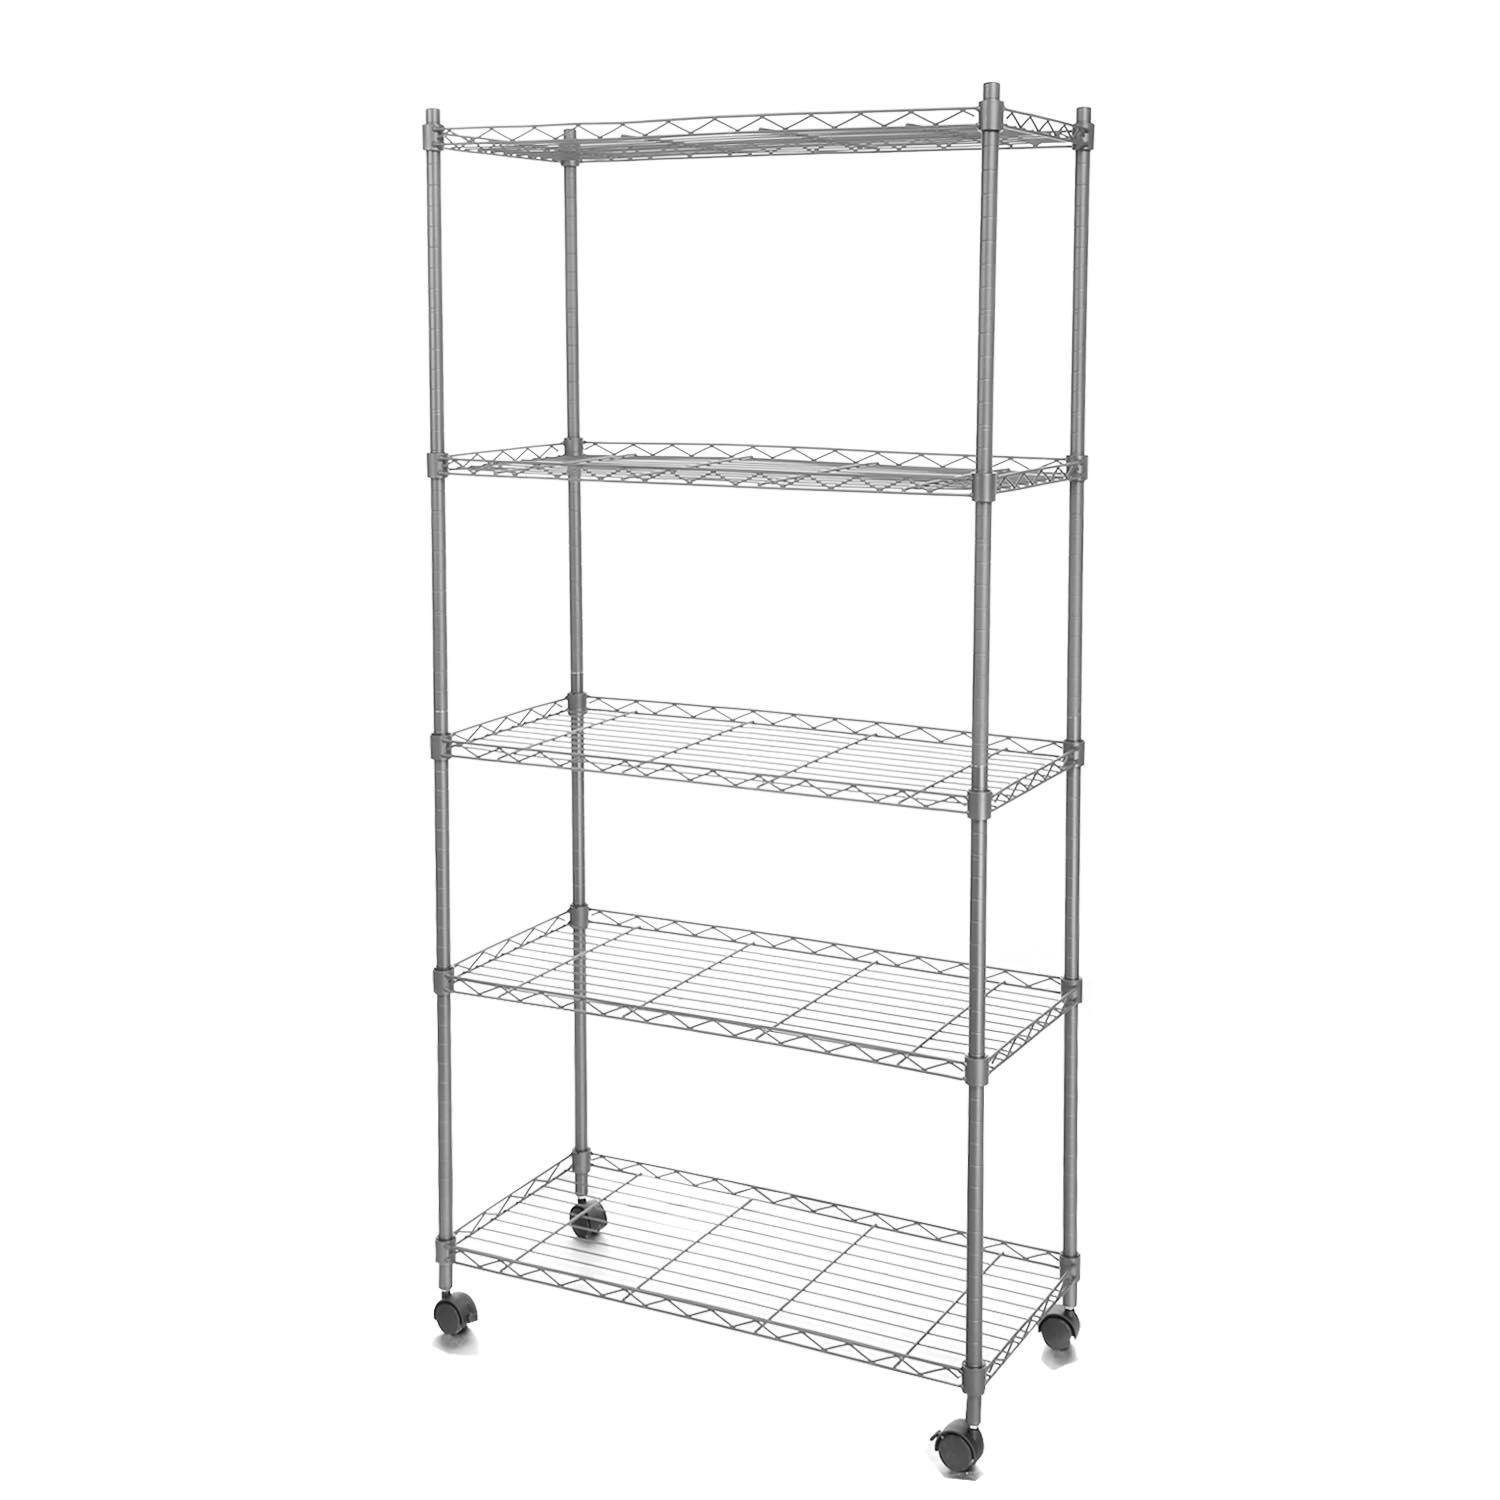 Hindom 5-Tier Steel Wire Shelving Unit on Wheels, Garage/Office/Kitchen/Restaurant Storage Rack for Organization with Adjustable leveling feet (US STOCK)